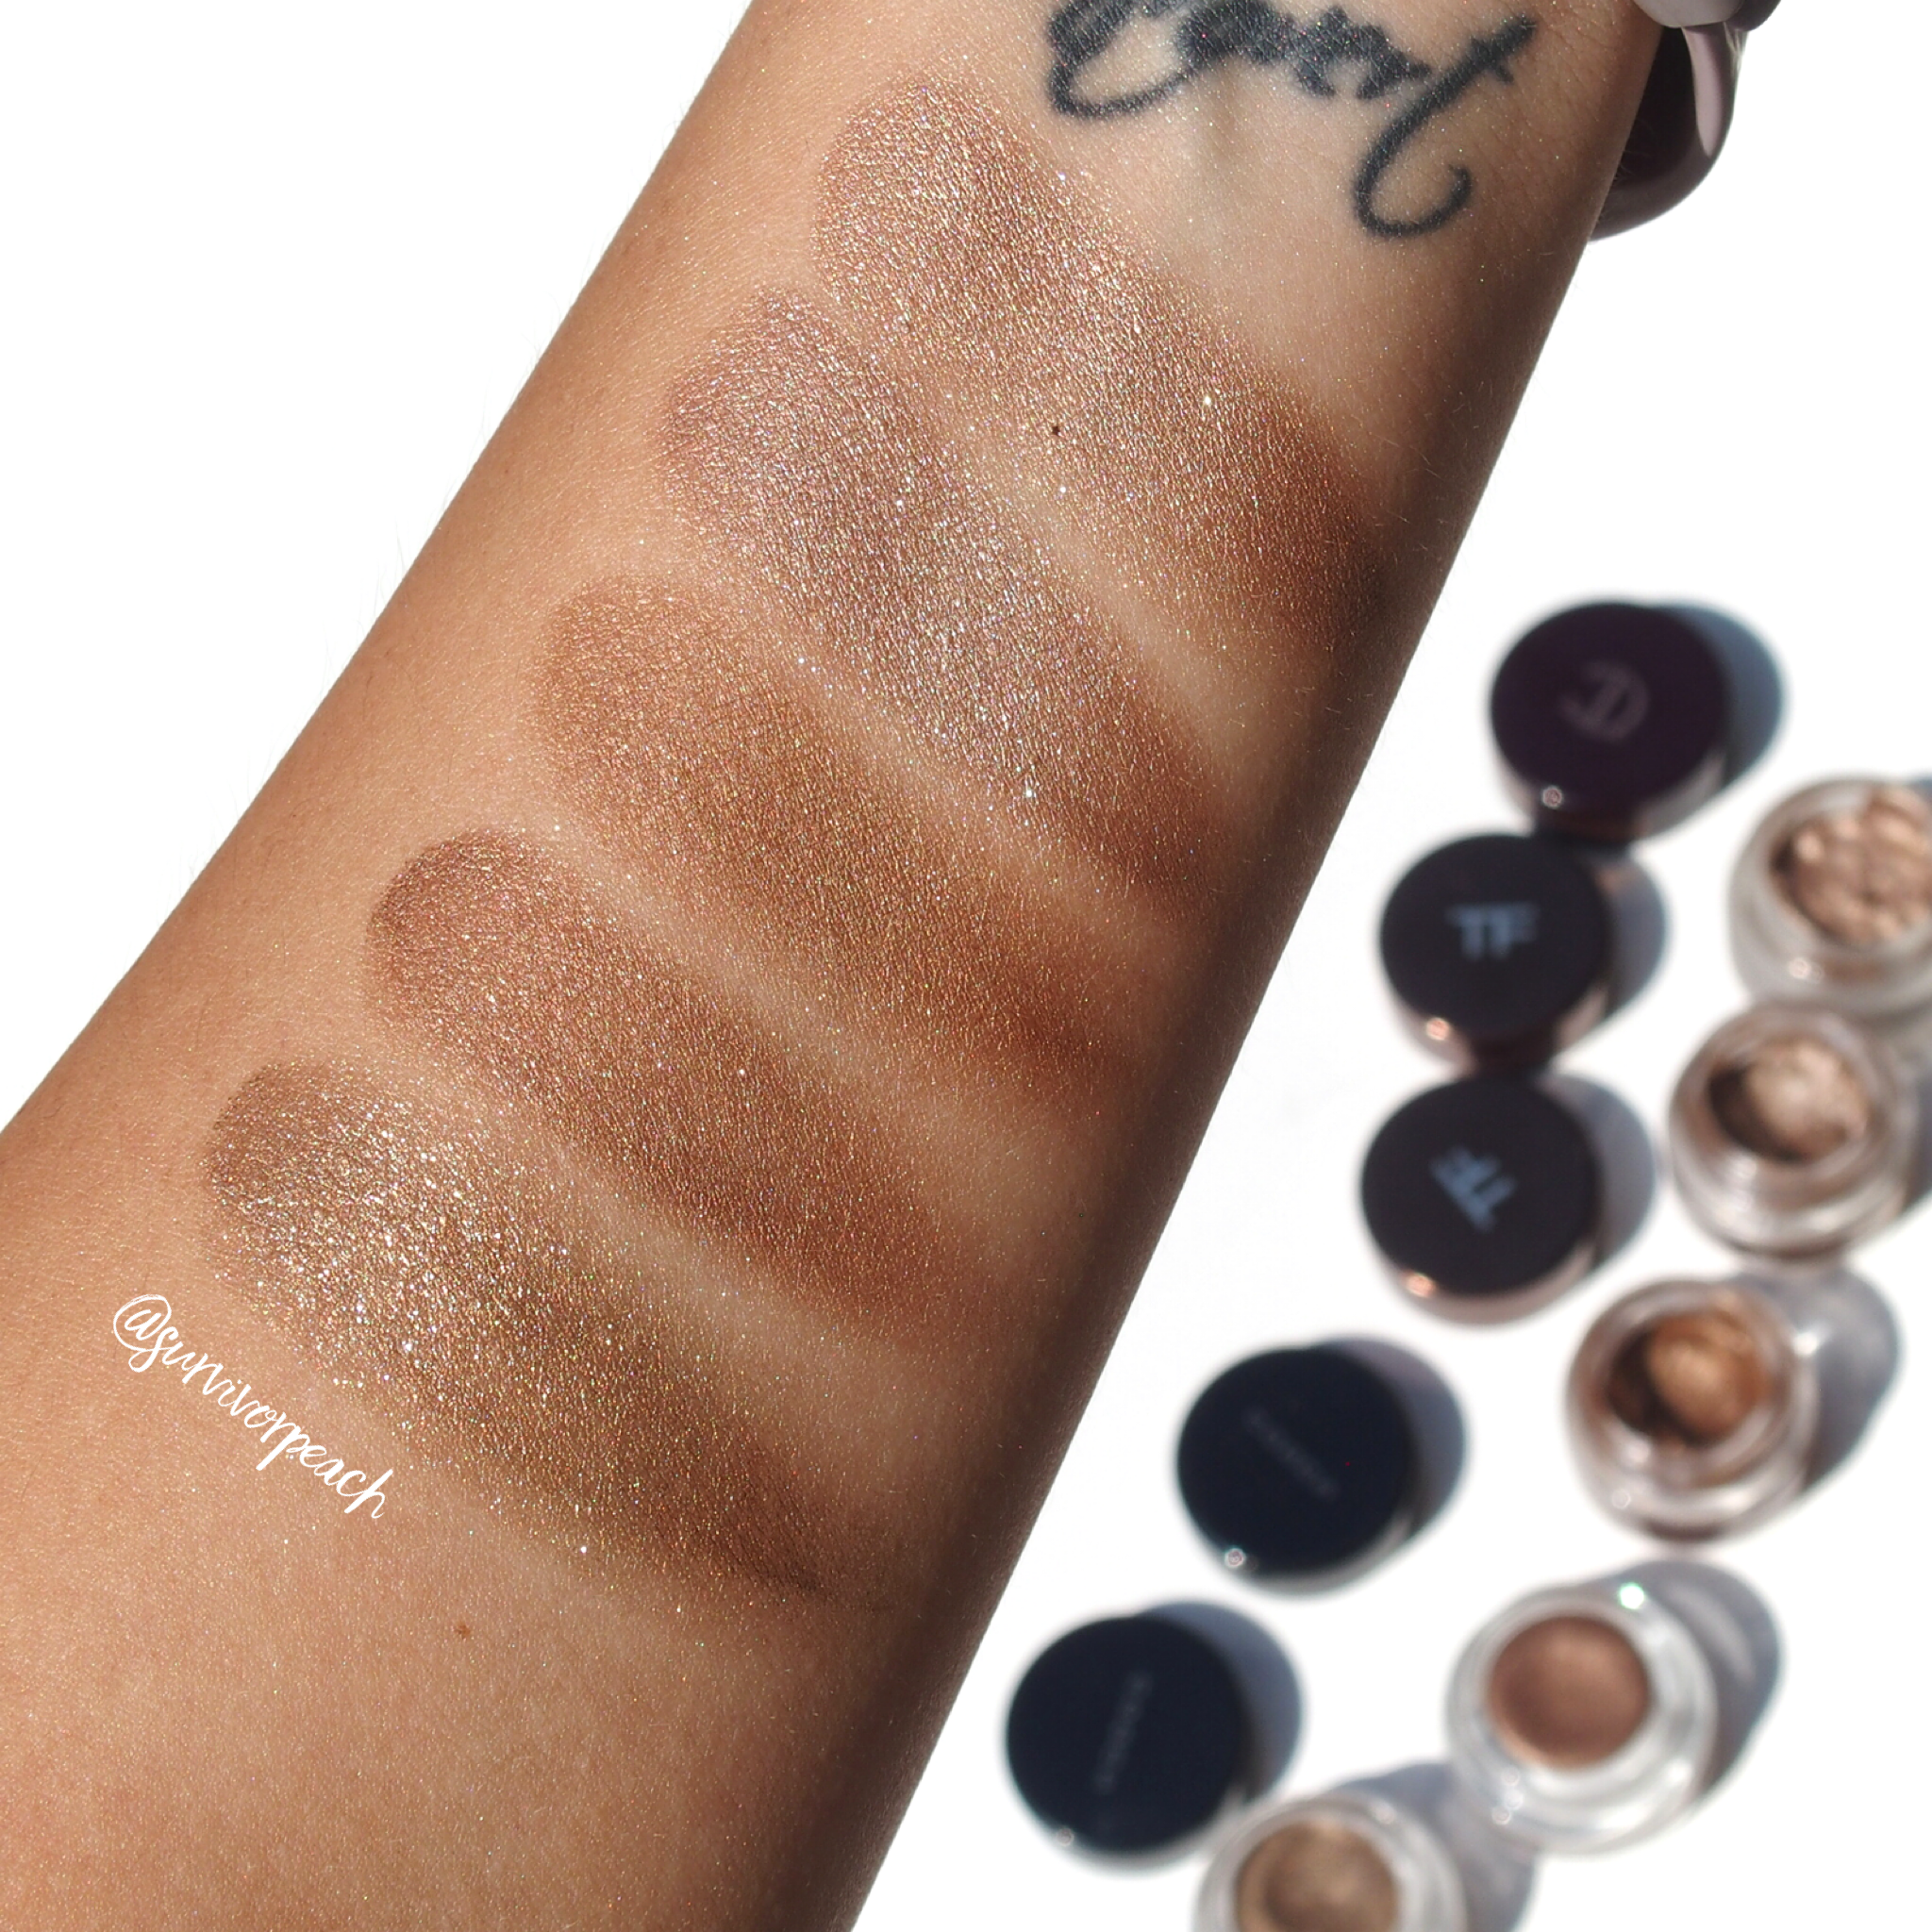 Swatches of the Charlotte Tilbury Mona Lisa, Tom Ford Platinum, Tom Ford Spice, Suqqu Deep Nuance Eyes EX03, Suqqu Deep Nuance Eyes 103